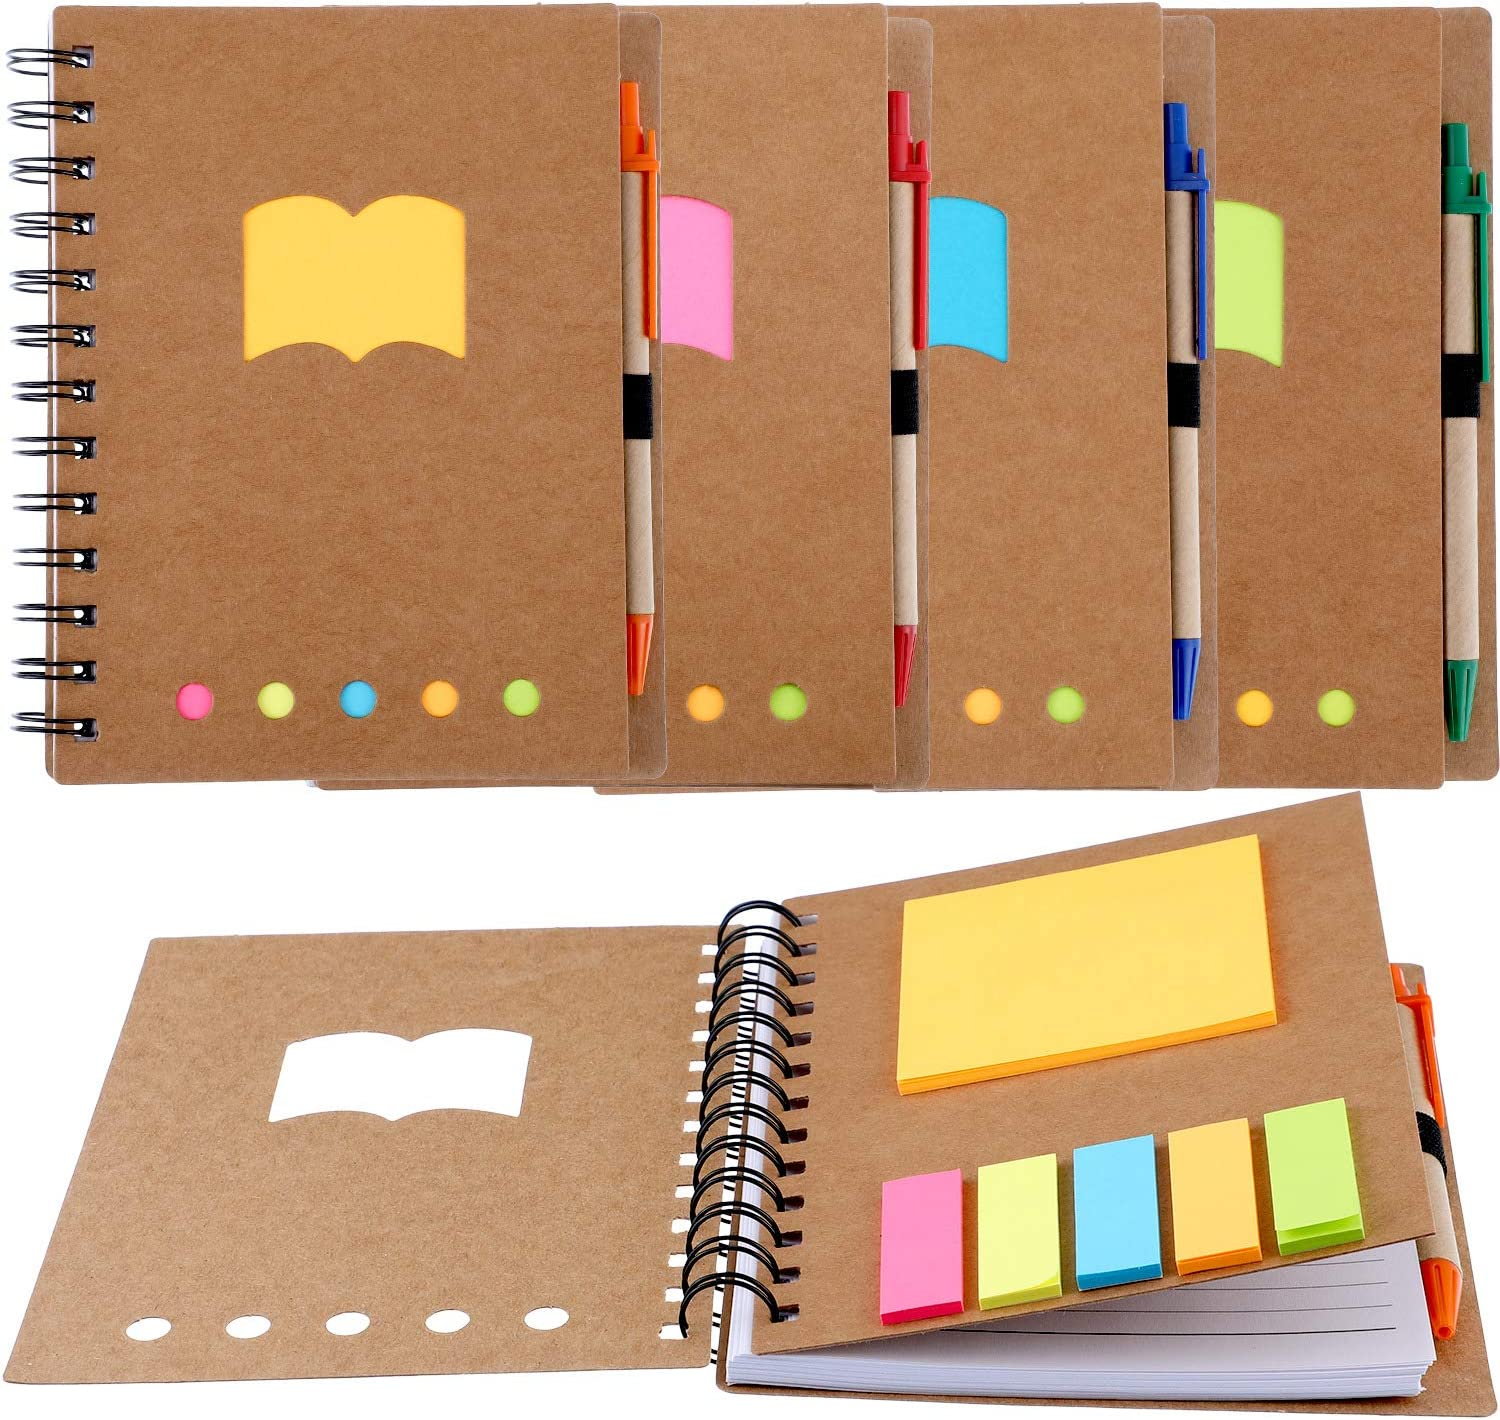 Gejoy 4 Pieces Spiral Notebook Steno Business Notepad with Pen in Holder and Sticky Notes Index Tabs Page Markers for School Office, 17.8 by 13.5 cm, 280 Sheets Totally, Kraft Cover